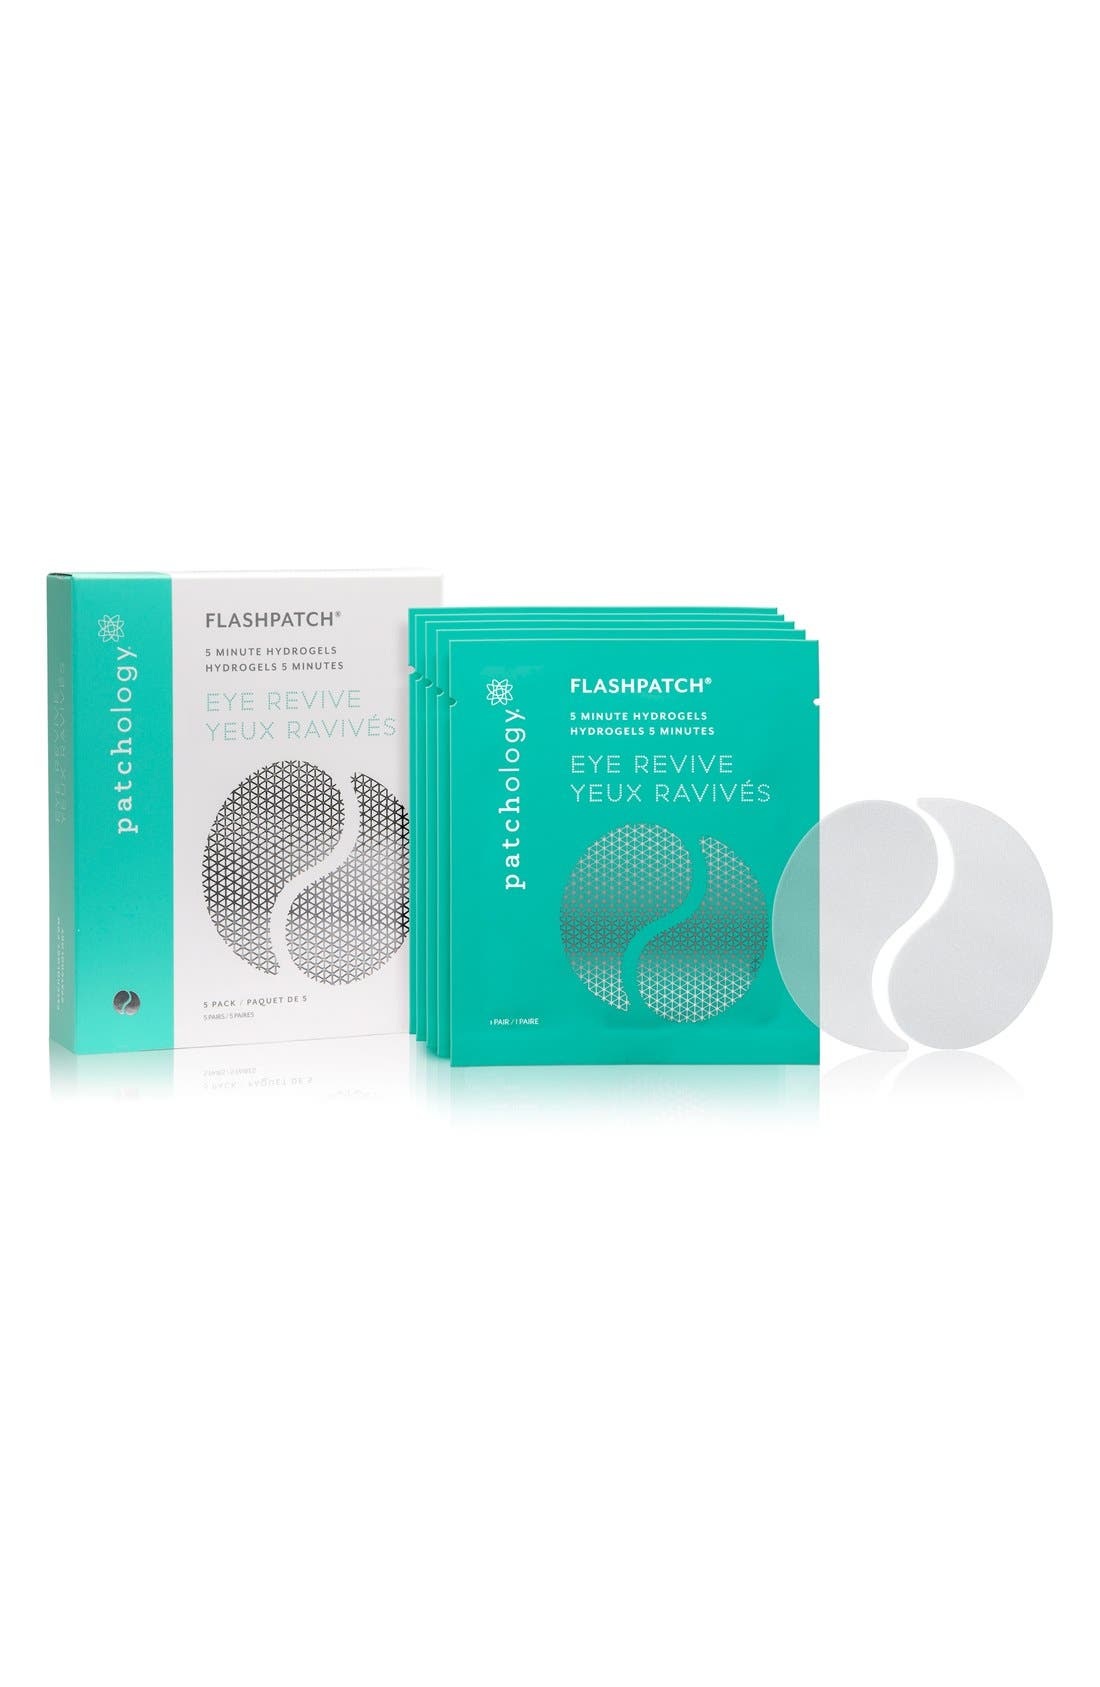 patchology Eye Revive FlashPatch™ 5 Minute Hydrogels